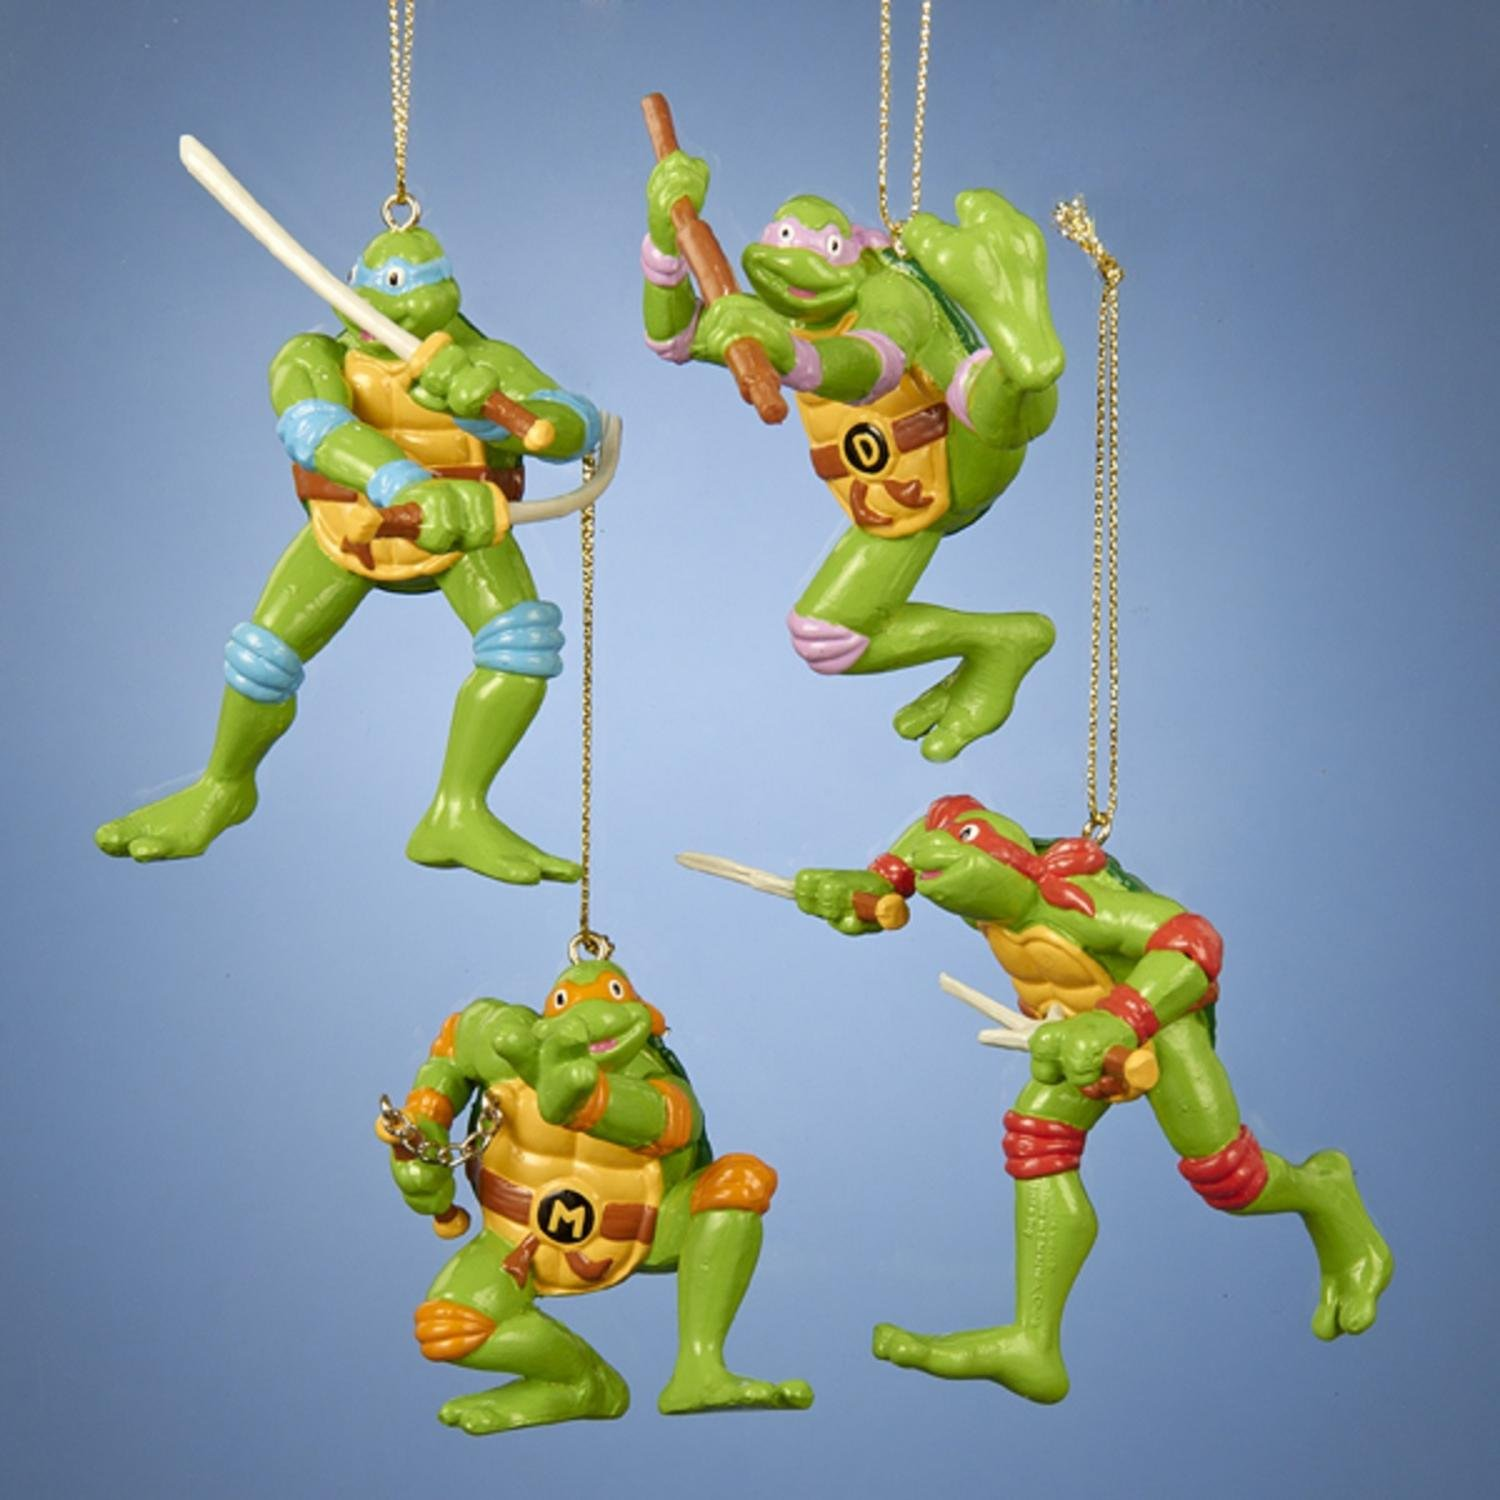 Club Pack of 24 Retro Teenage Mutant Ninja Turtles Christmas Ornaments 3.75''